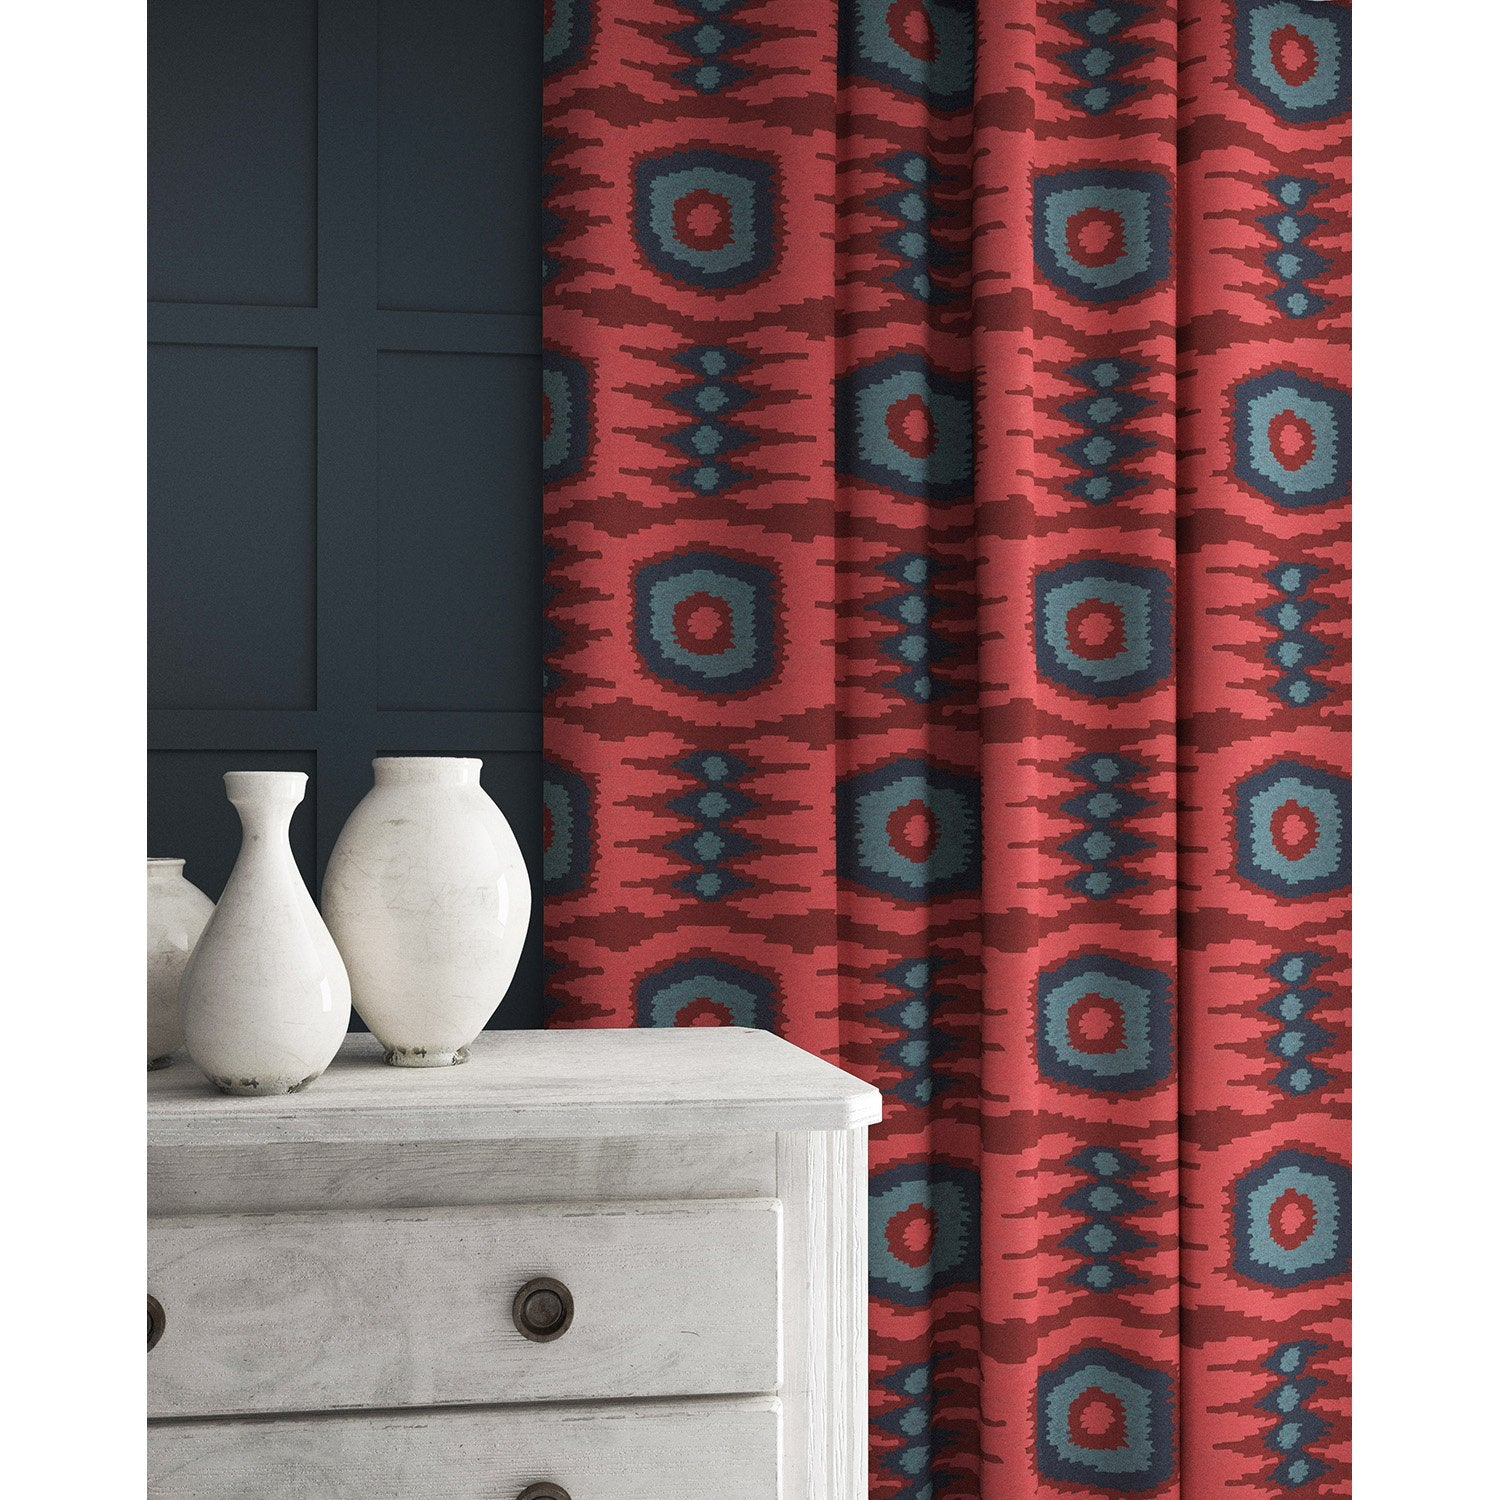 Velvet curtains in a red and blue velvet fabric with stain resistant finish and abstract print